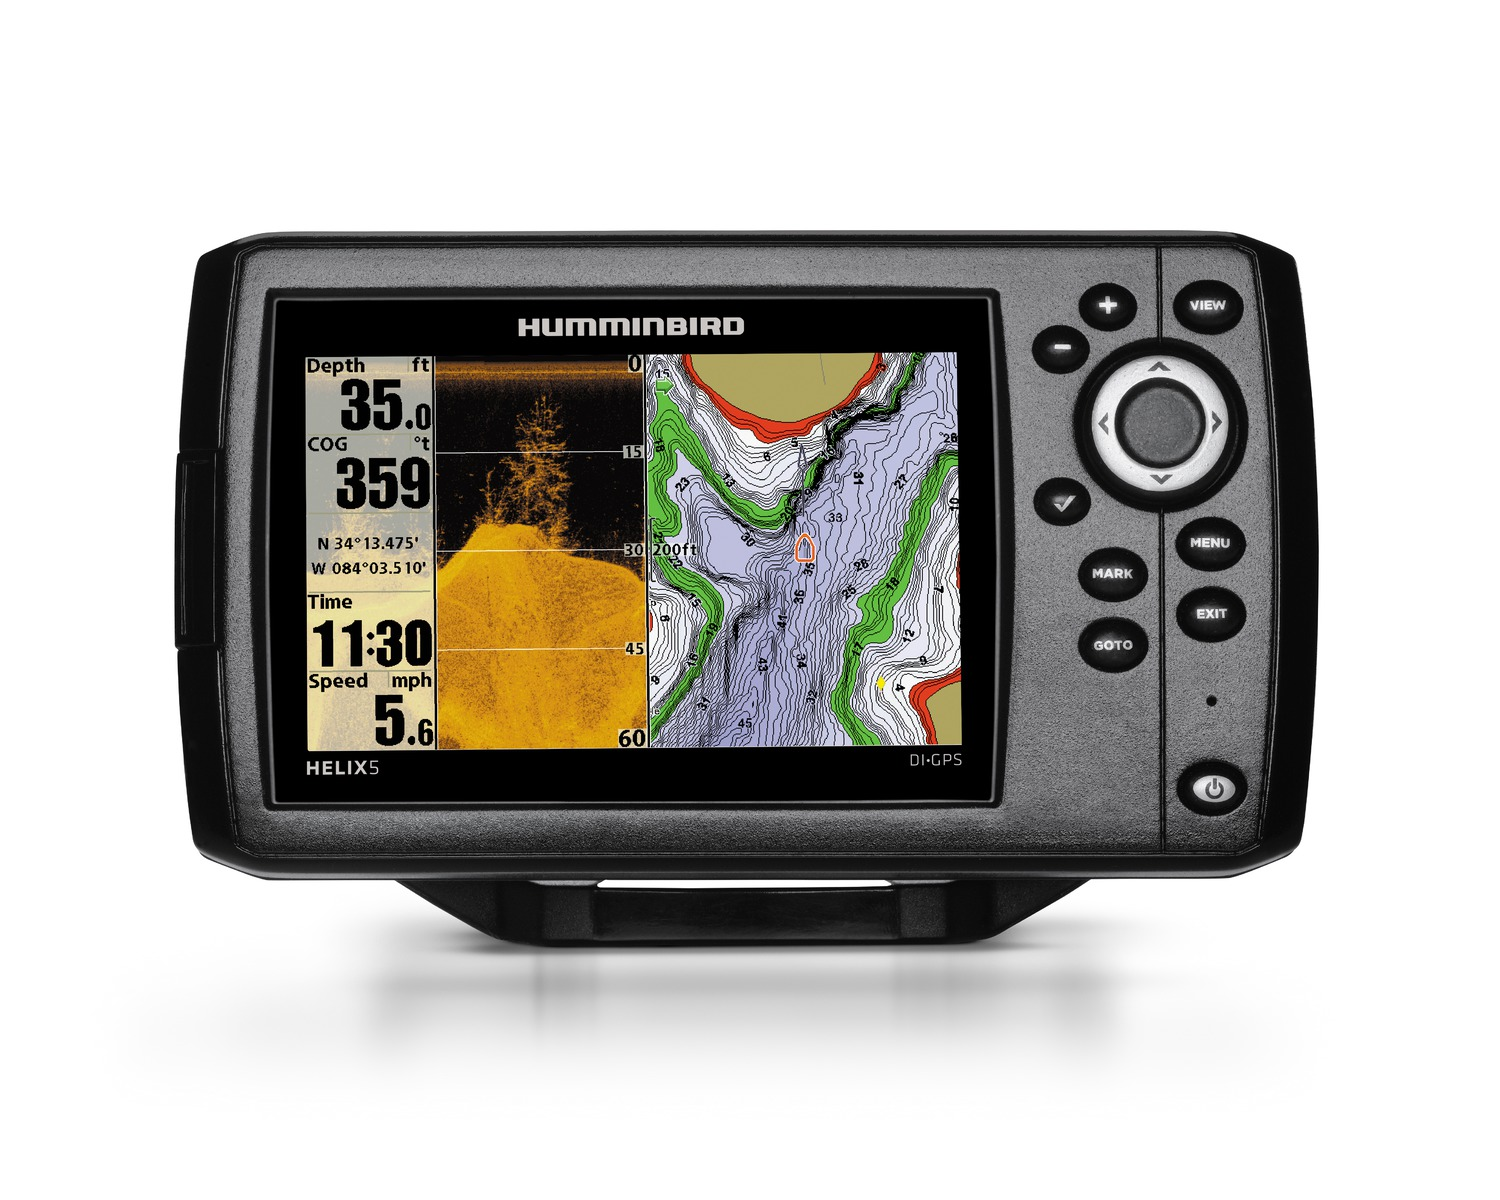 humminbird helix 5gps hd di sonde ta combin s gps sondeur bigship accastillage. Black Bedroom Furniture Sets. Home Design Ideas